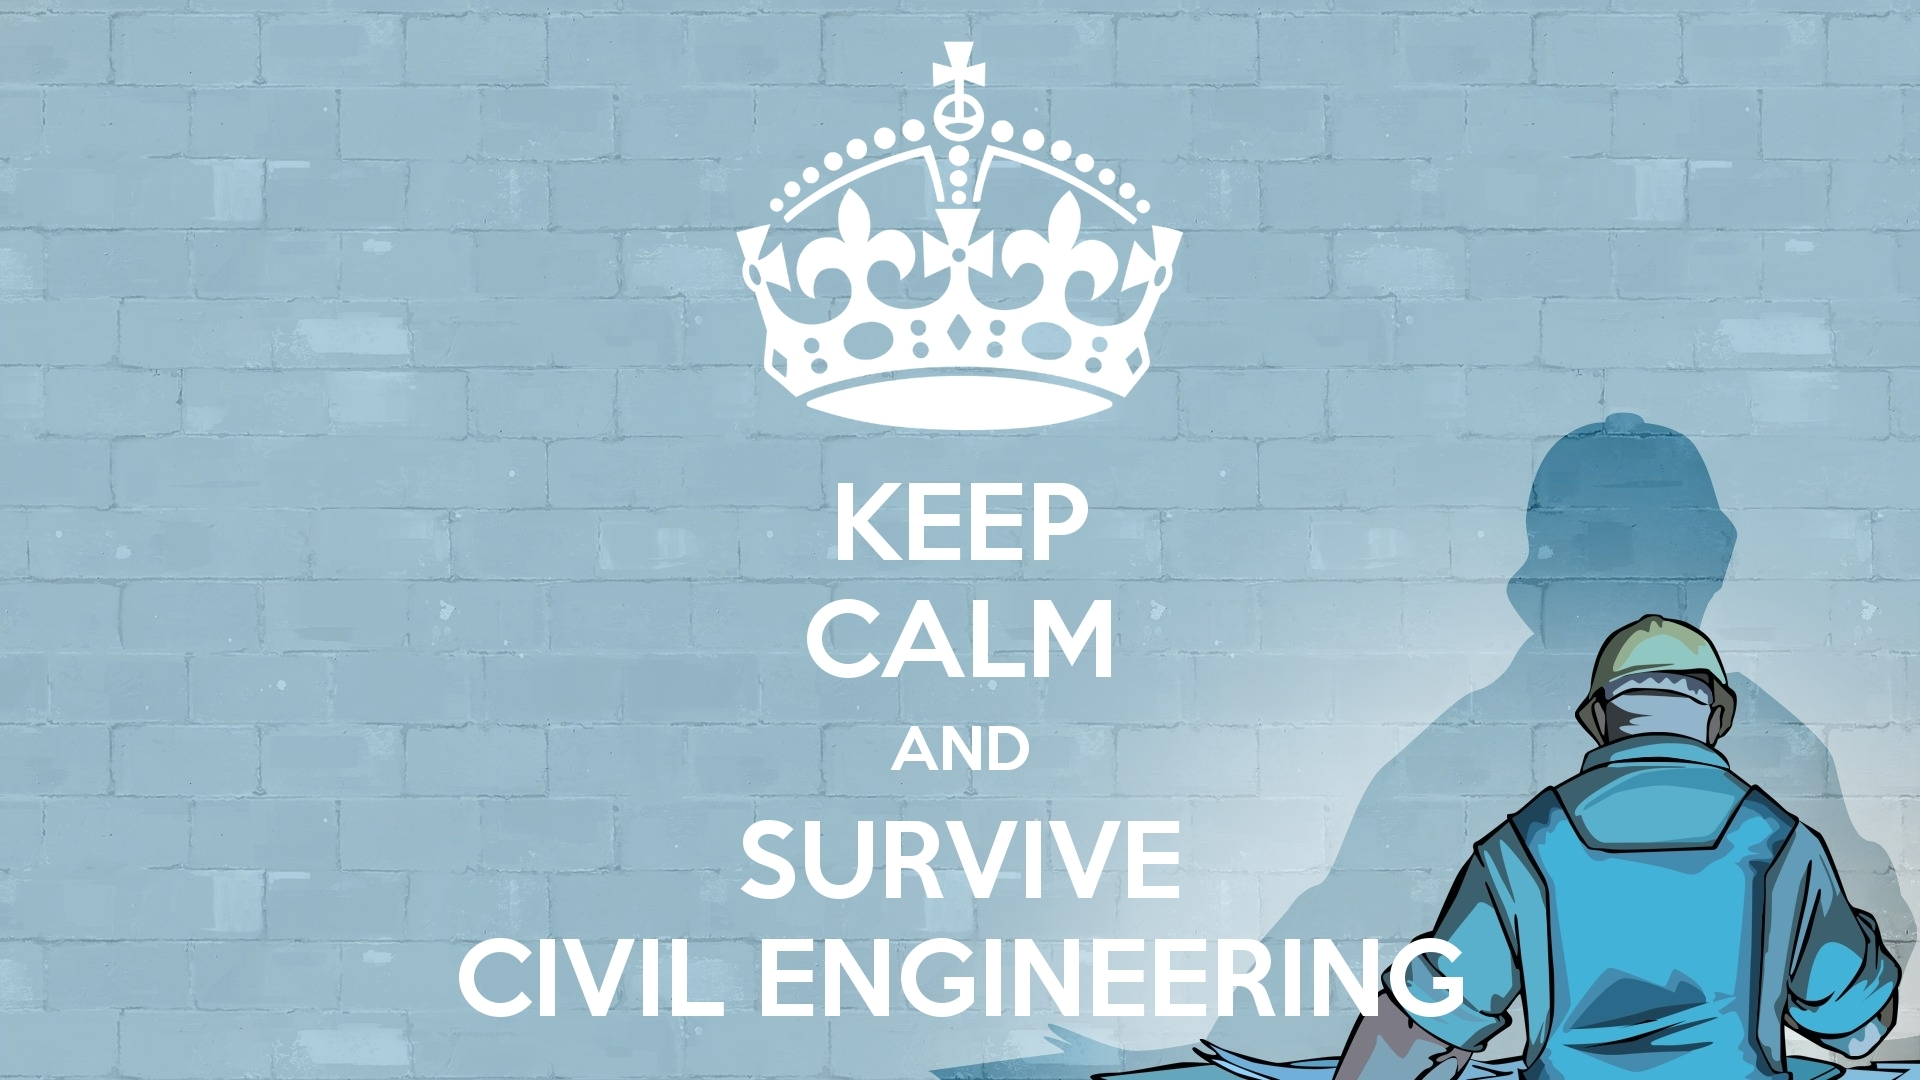 pc, laptop 49 civil engineering wallpapers in fhd-hwr99, b.scb